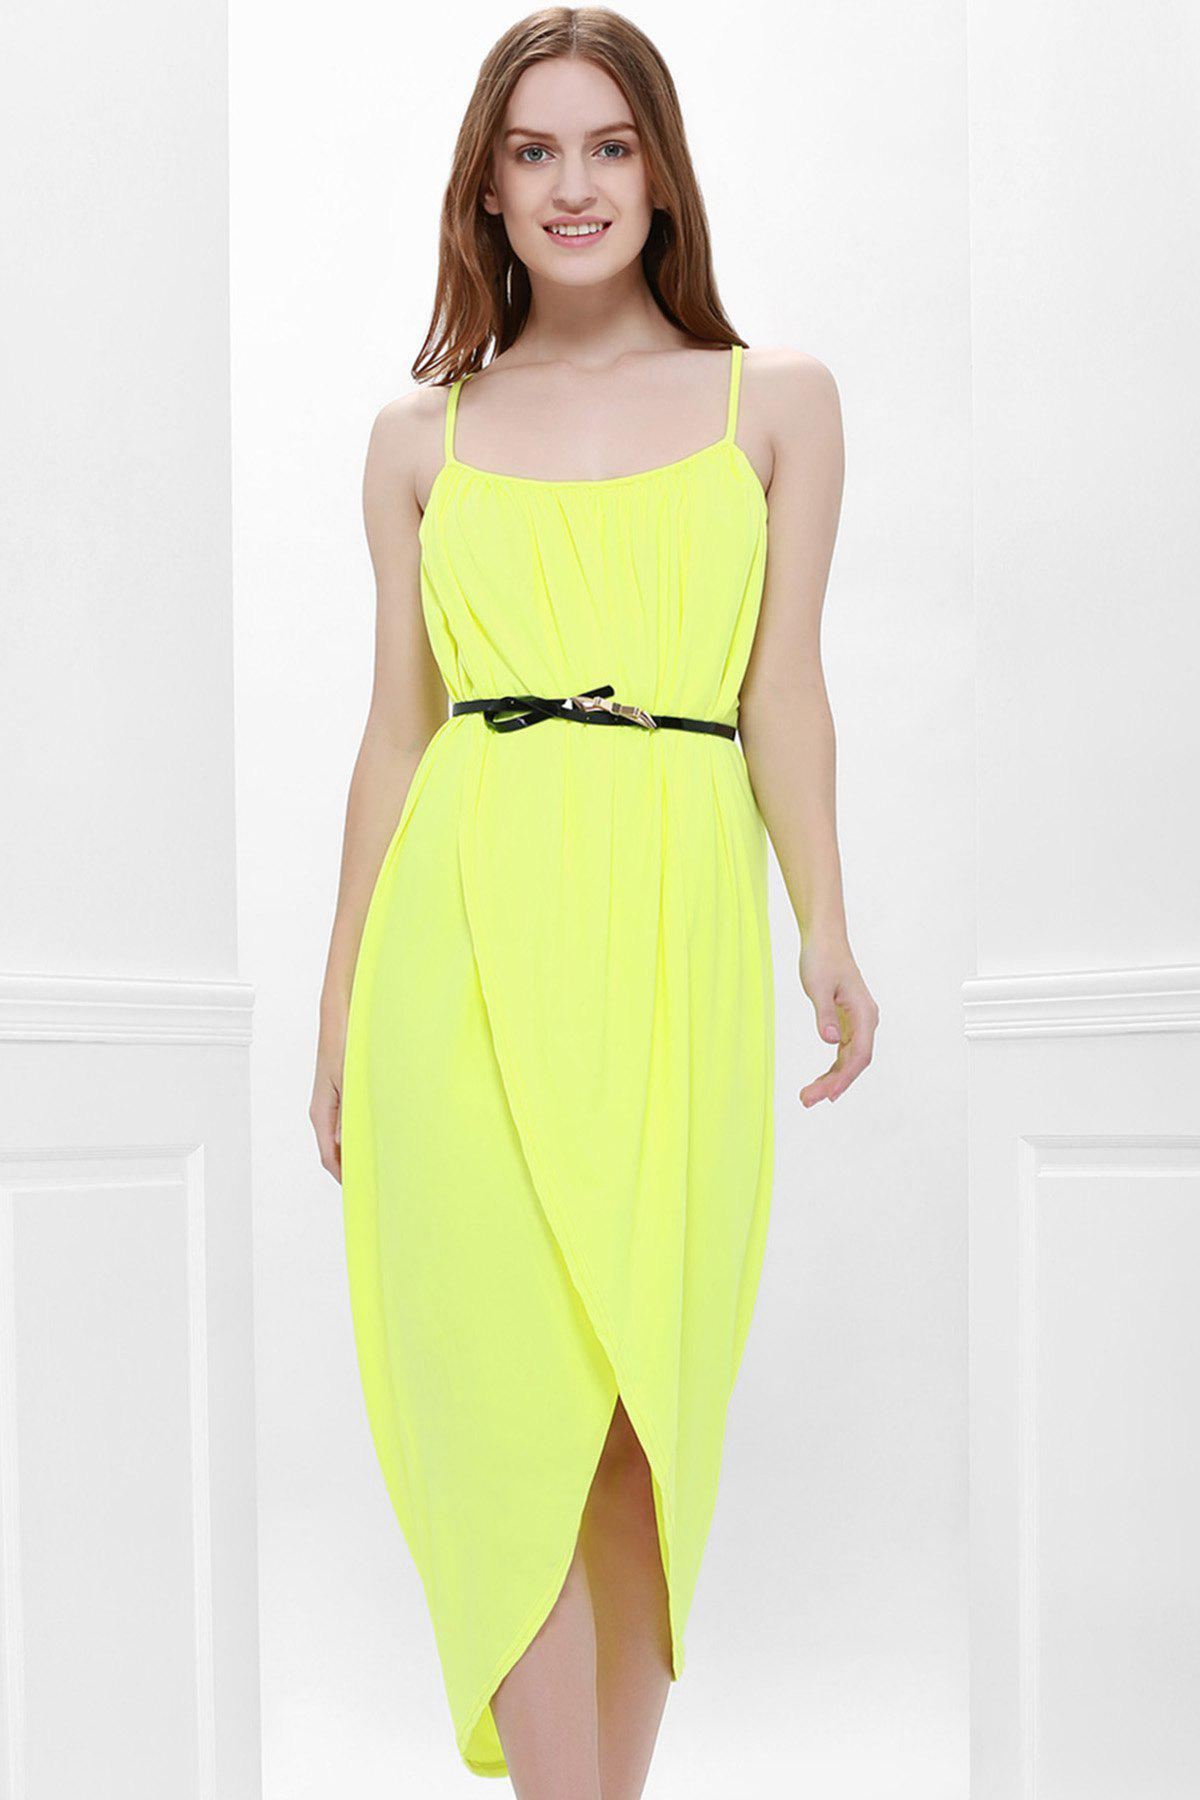 Sexy Spaghetti Strap Sleeveless Furcal Solid Color Women's Dress - S YELLOW